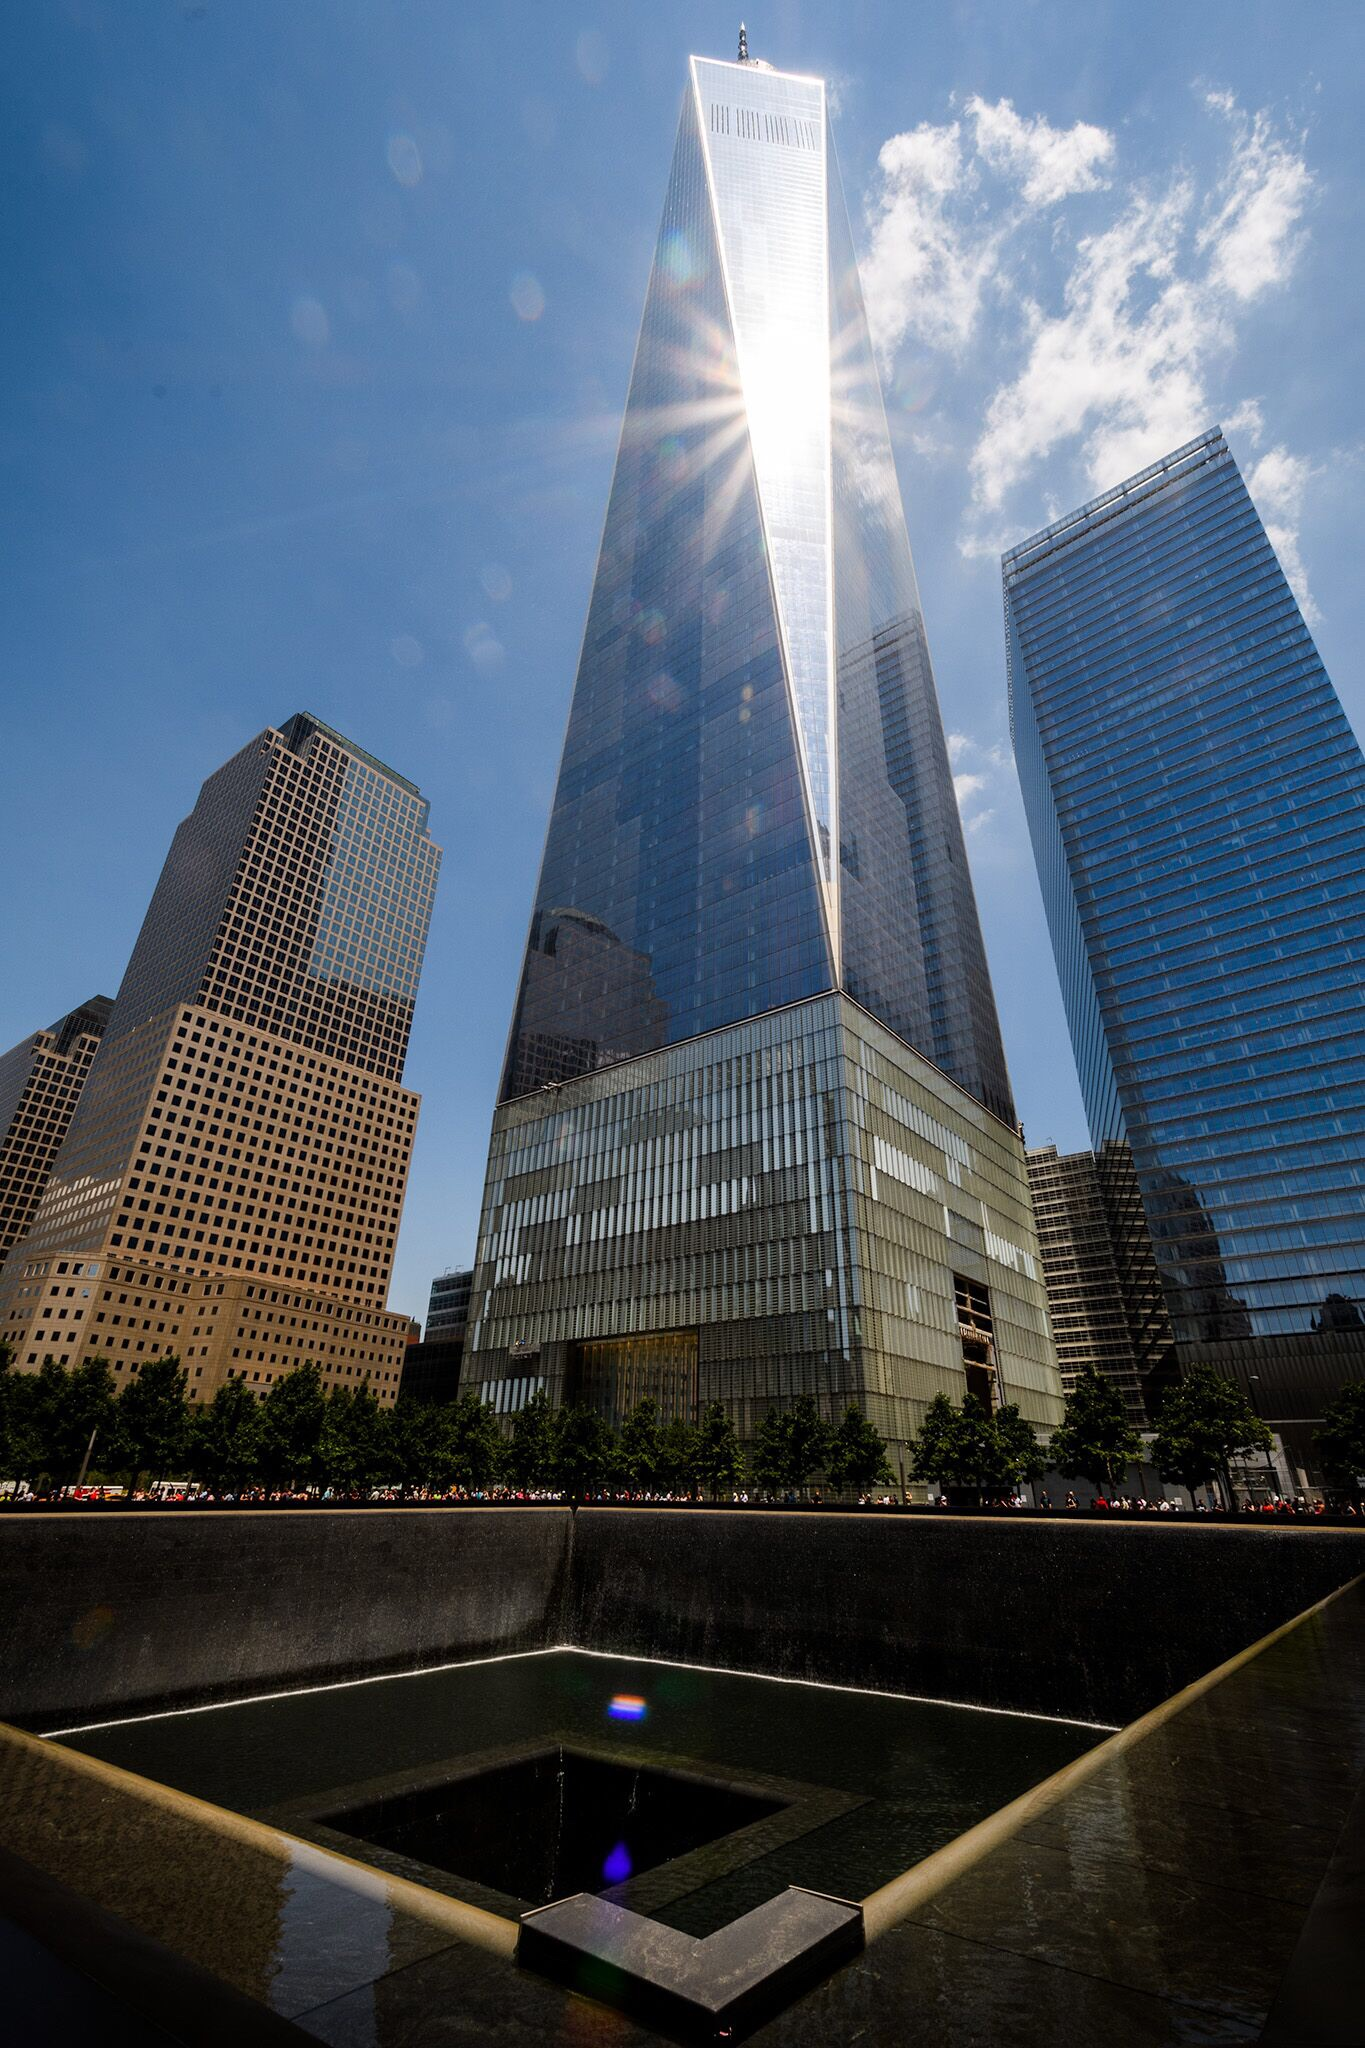 The dramatic 9/11 Memorial waterfall fills the foot prints of the original buildings.